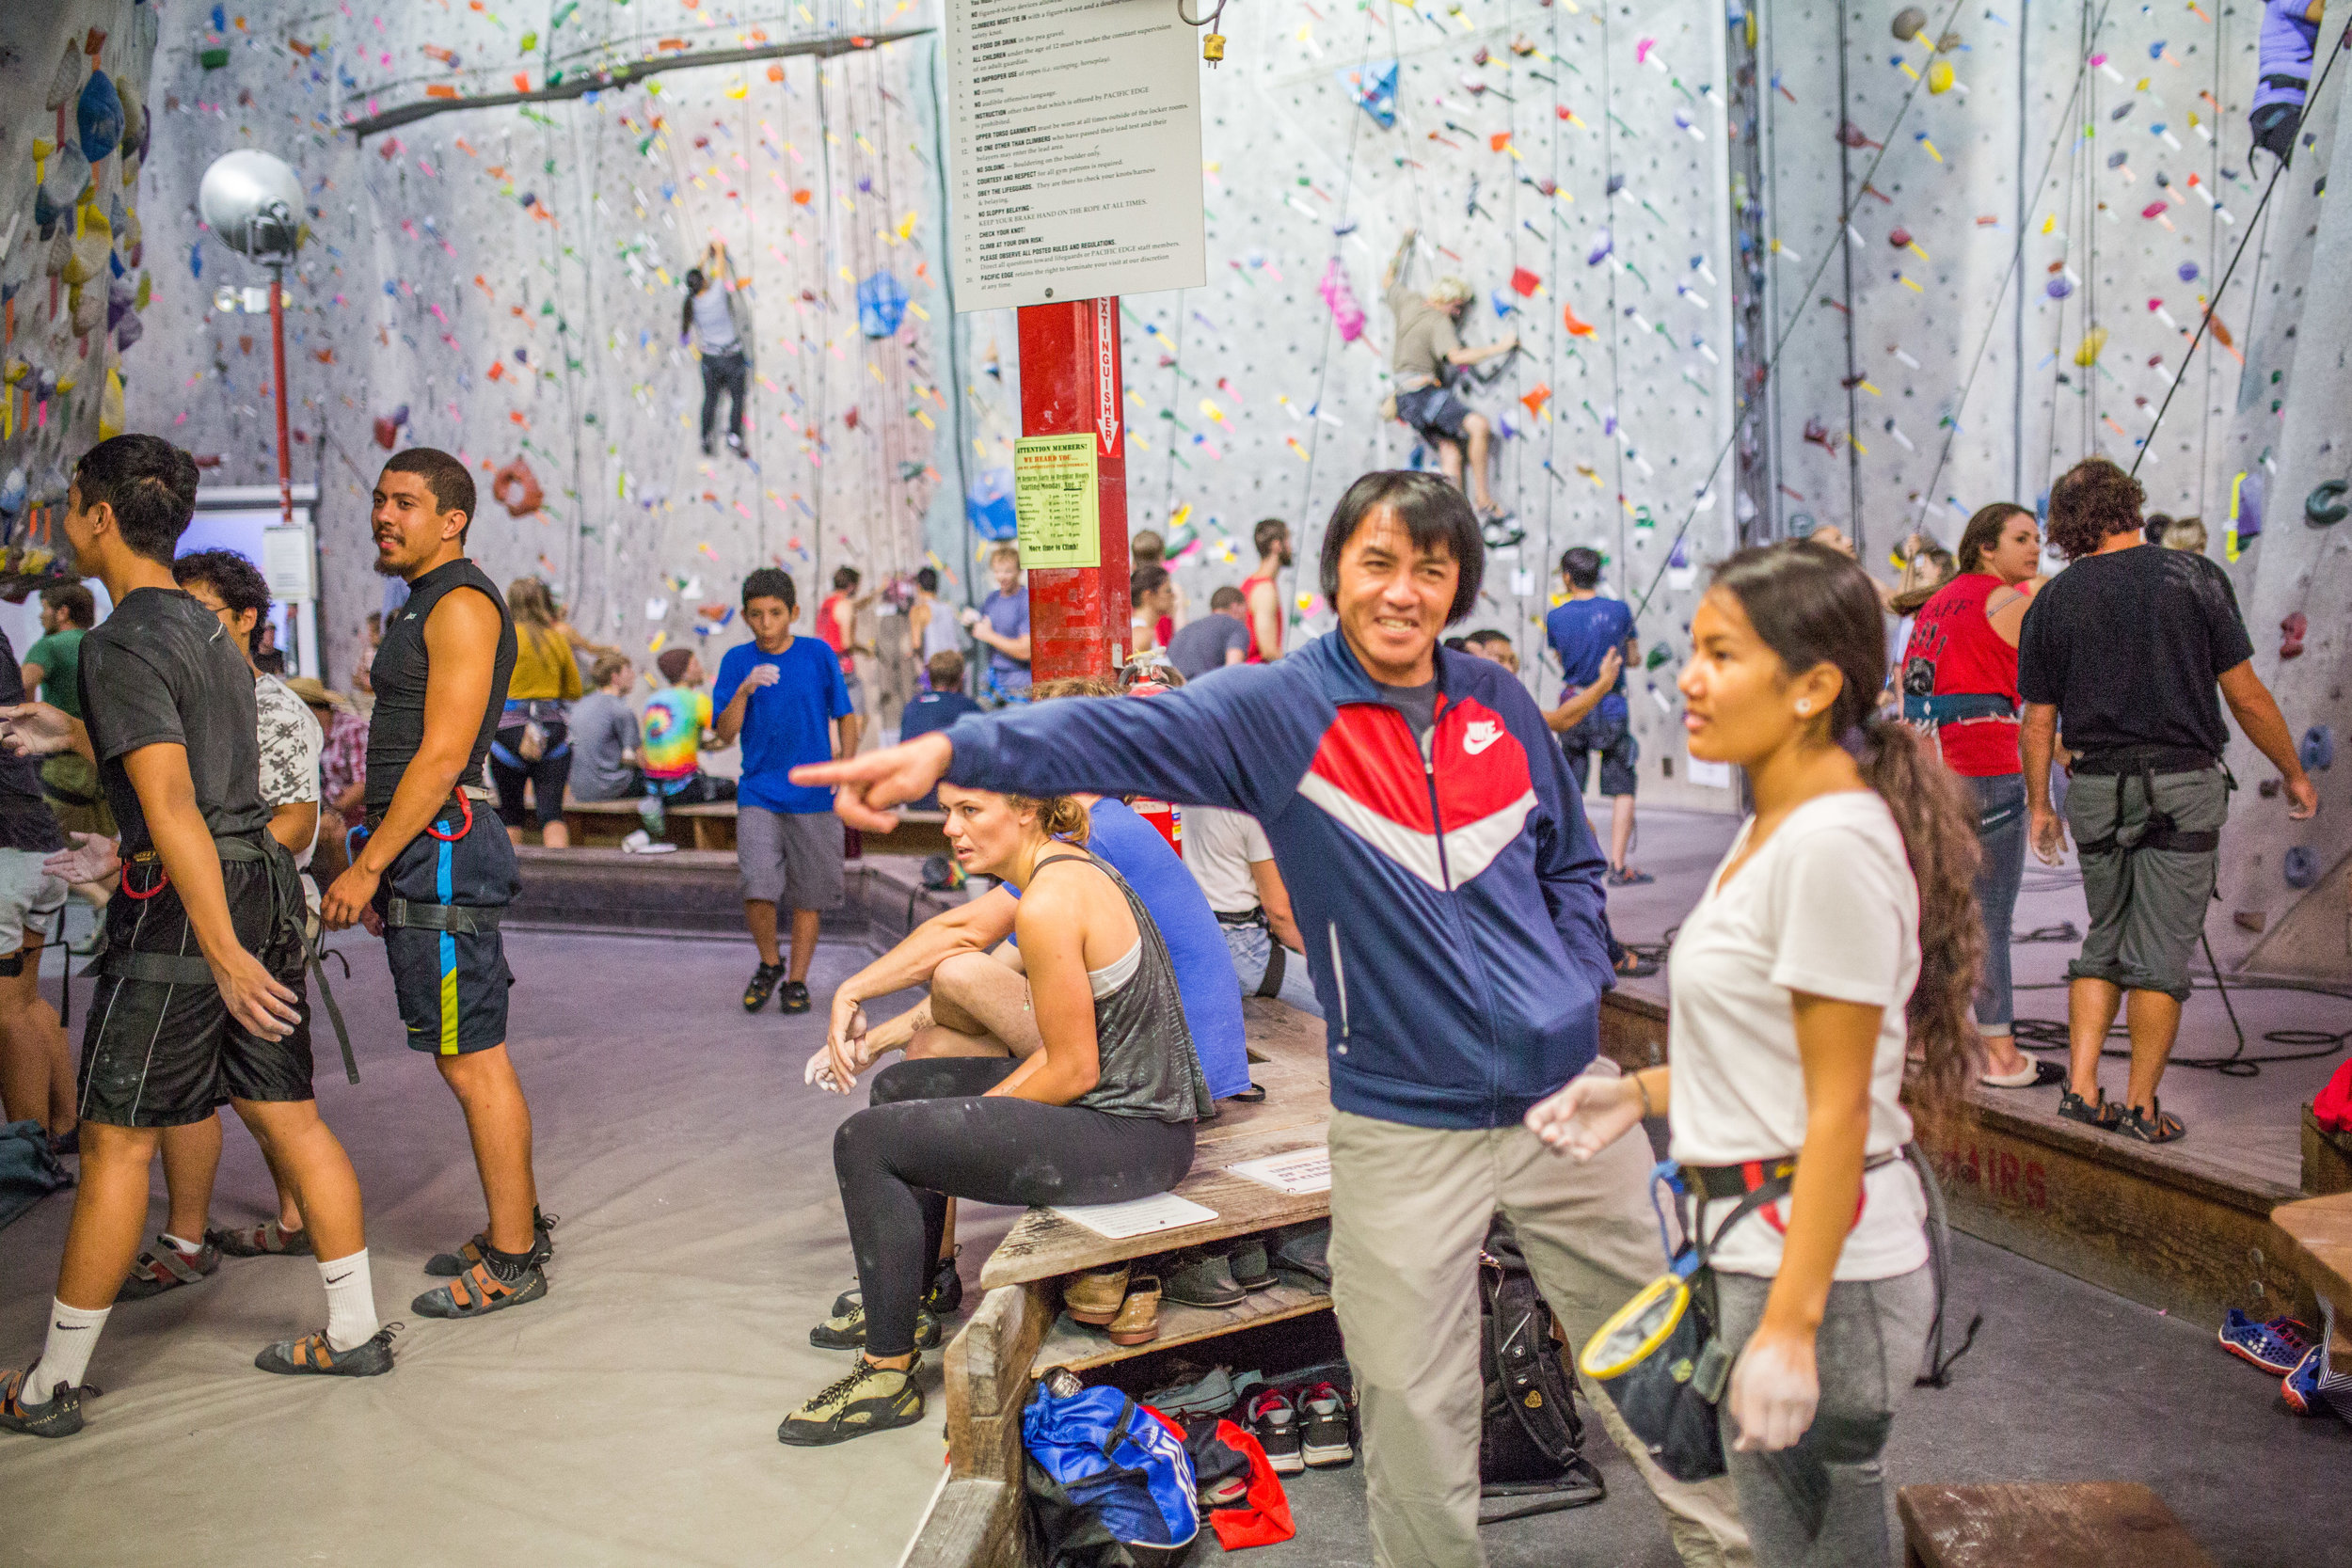 Folks having a Blast at the 2015 Climb for Nepal Event